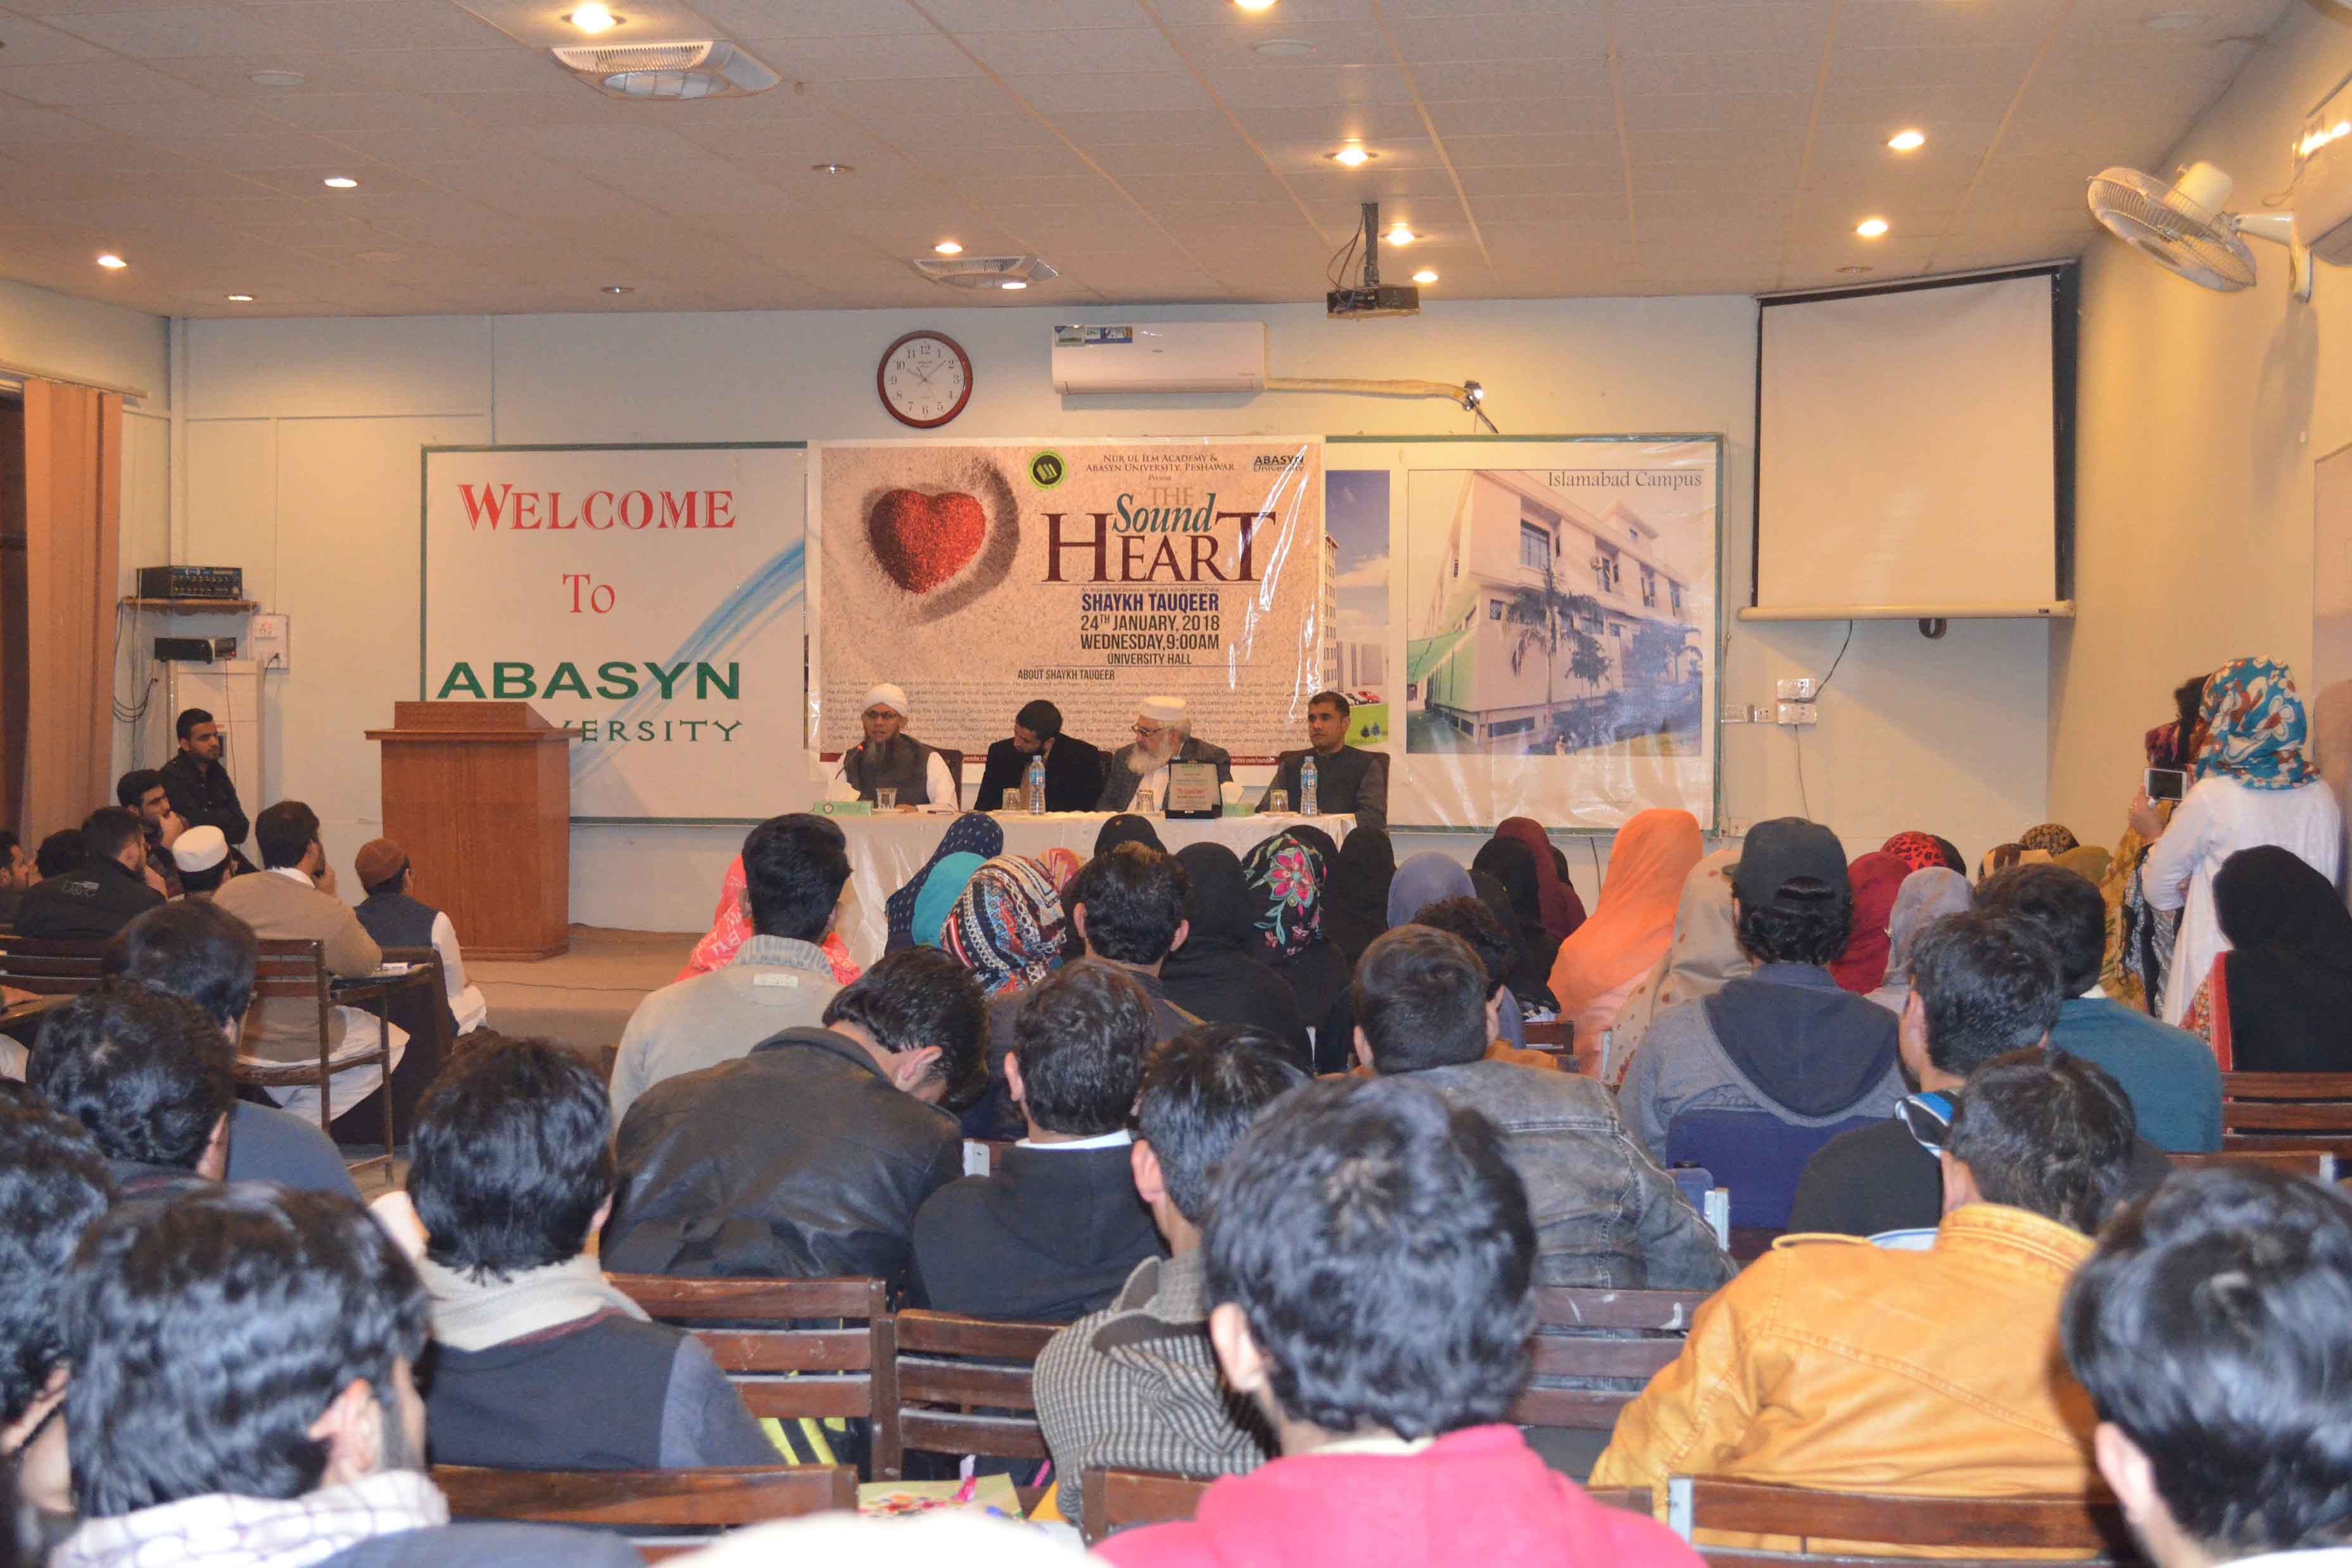 The Sound Heart an Inspirational speech by Shaykh Tauqeer